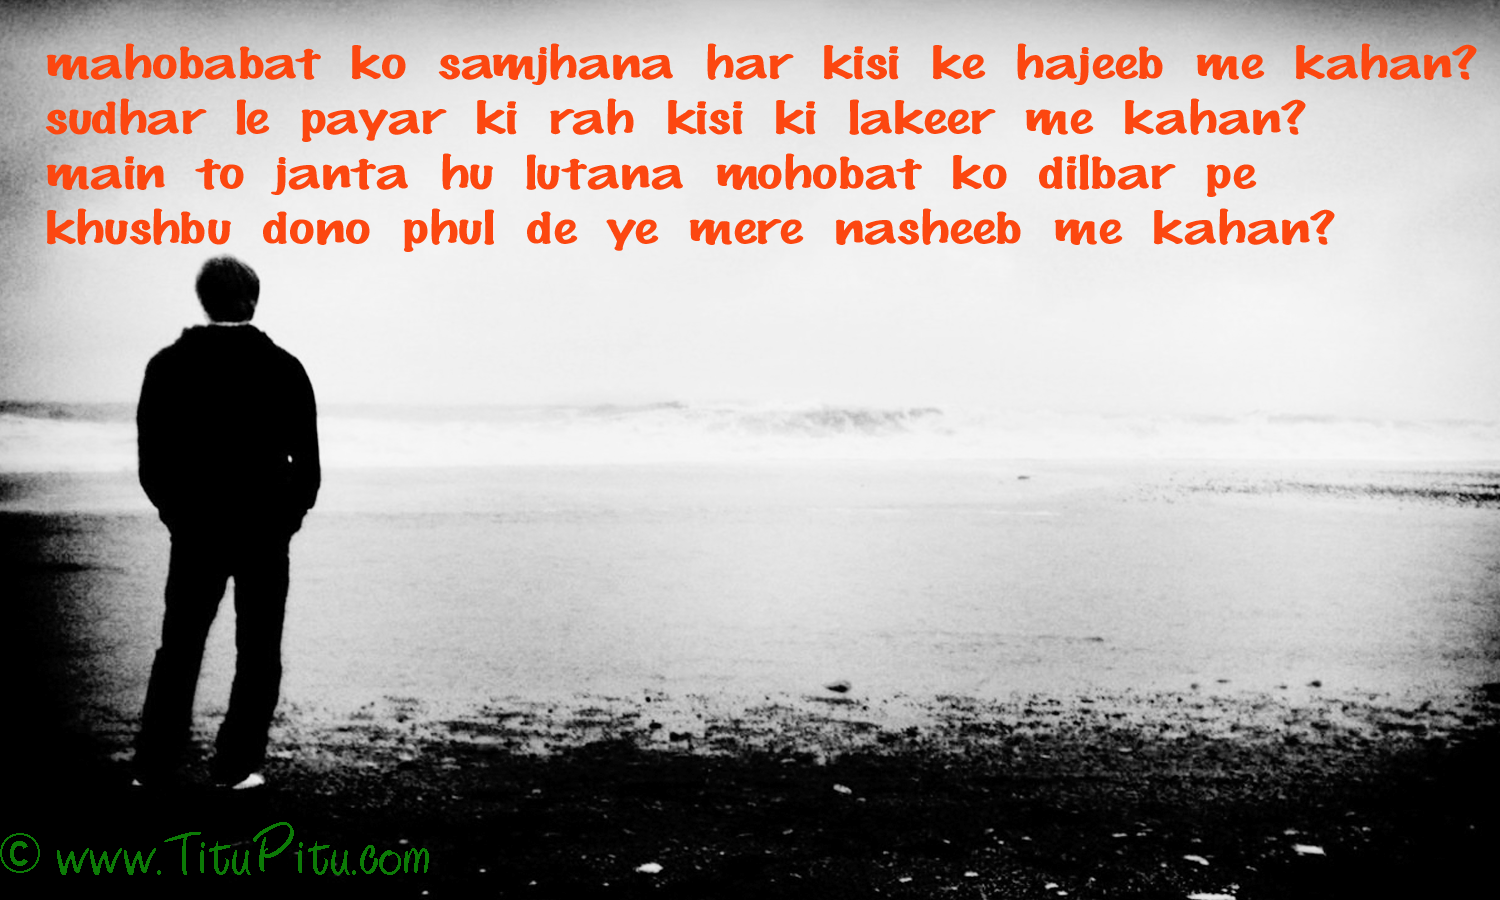 ... are going to be going present you few sad love shayari wallpaper